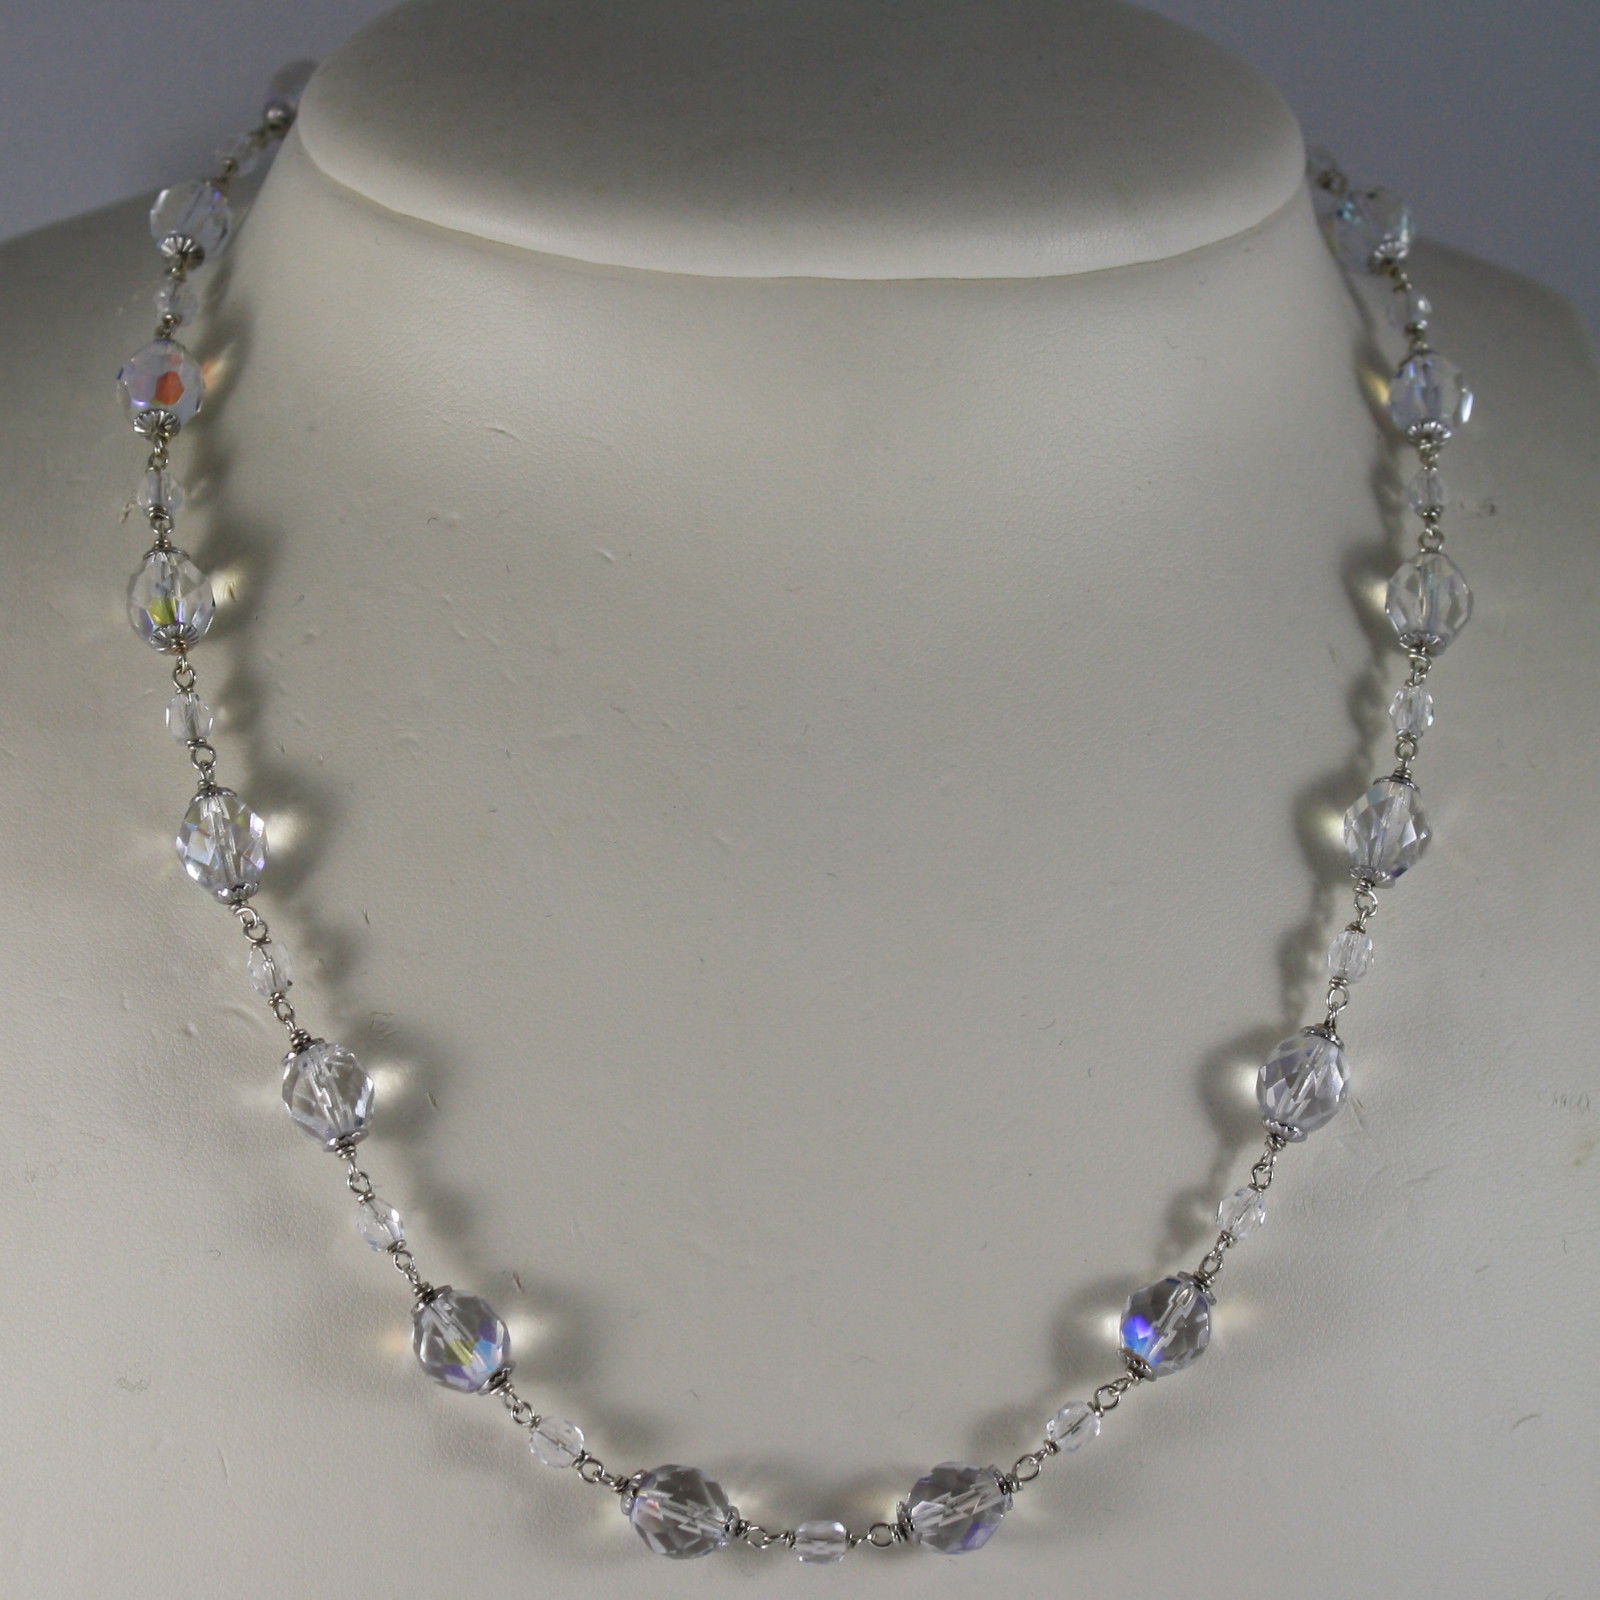 .925 RHODIUM SILVER NECKLACE WITH TRANSPARENT CRYSTALS